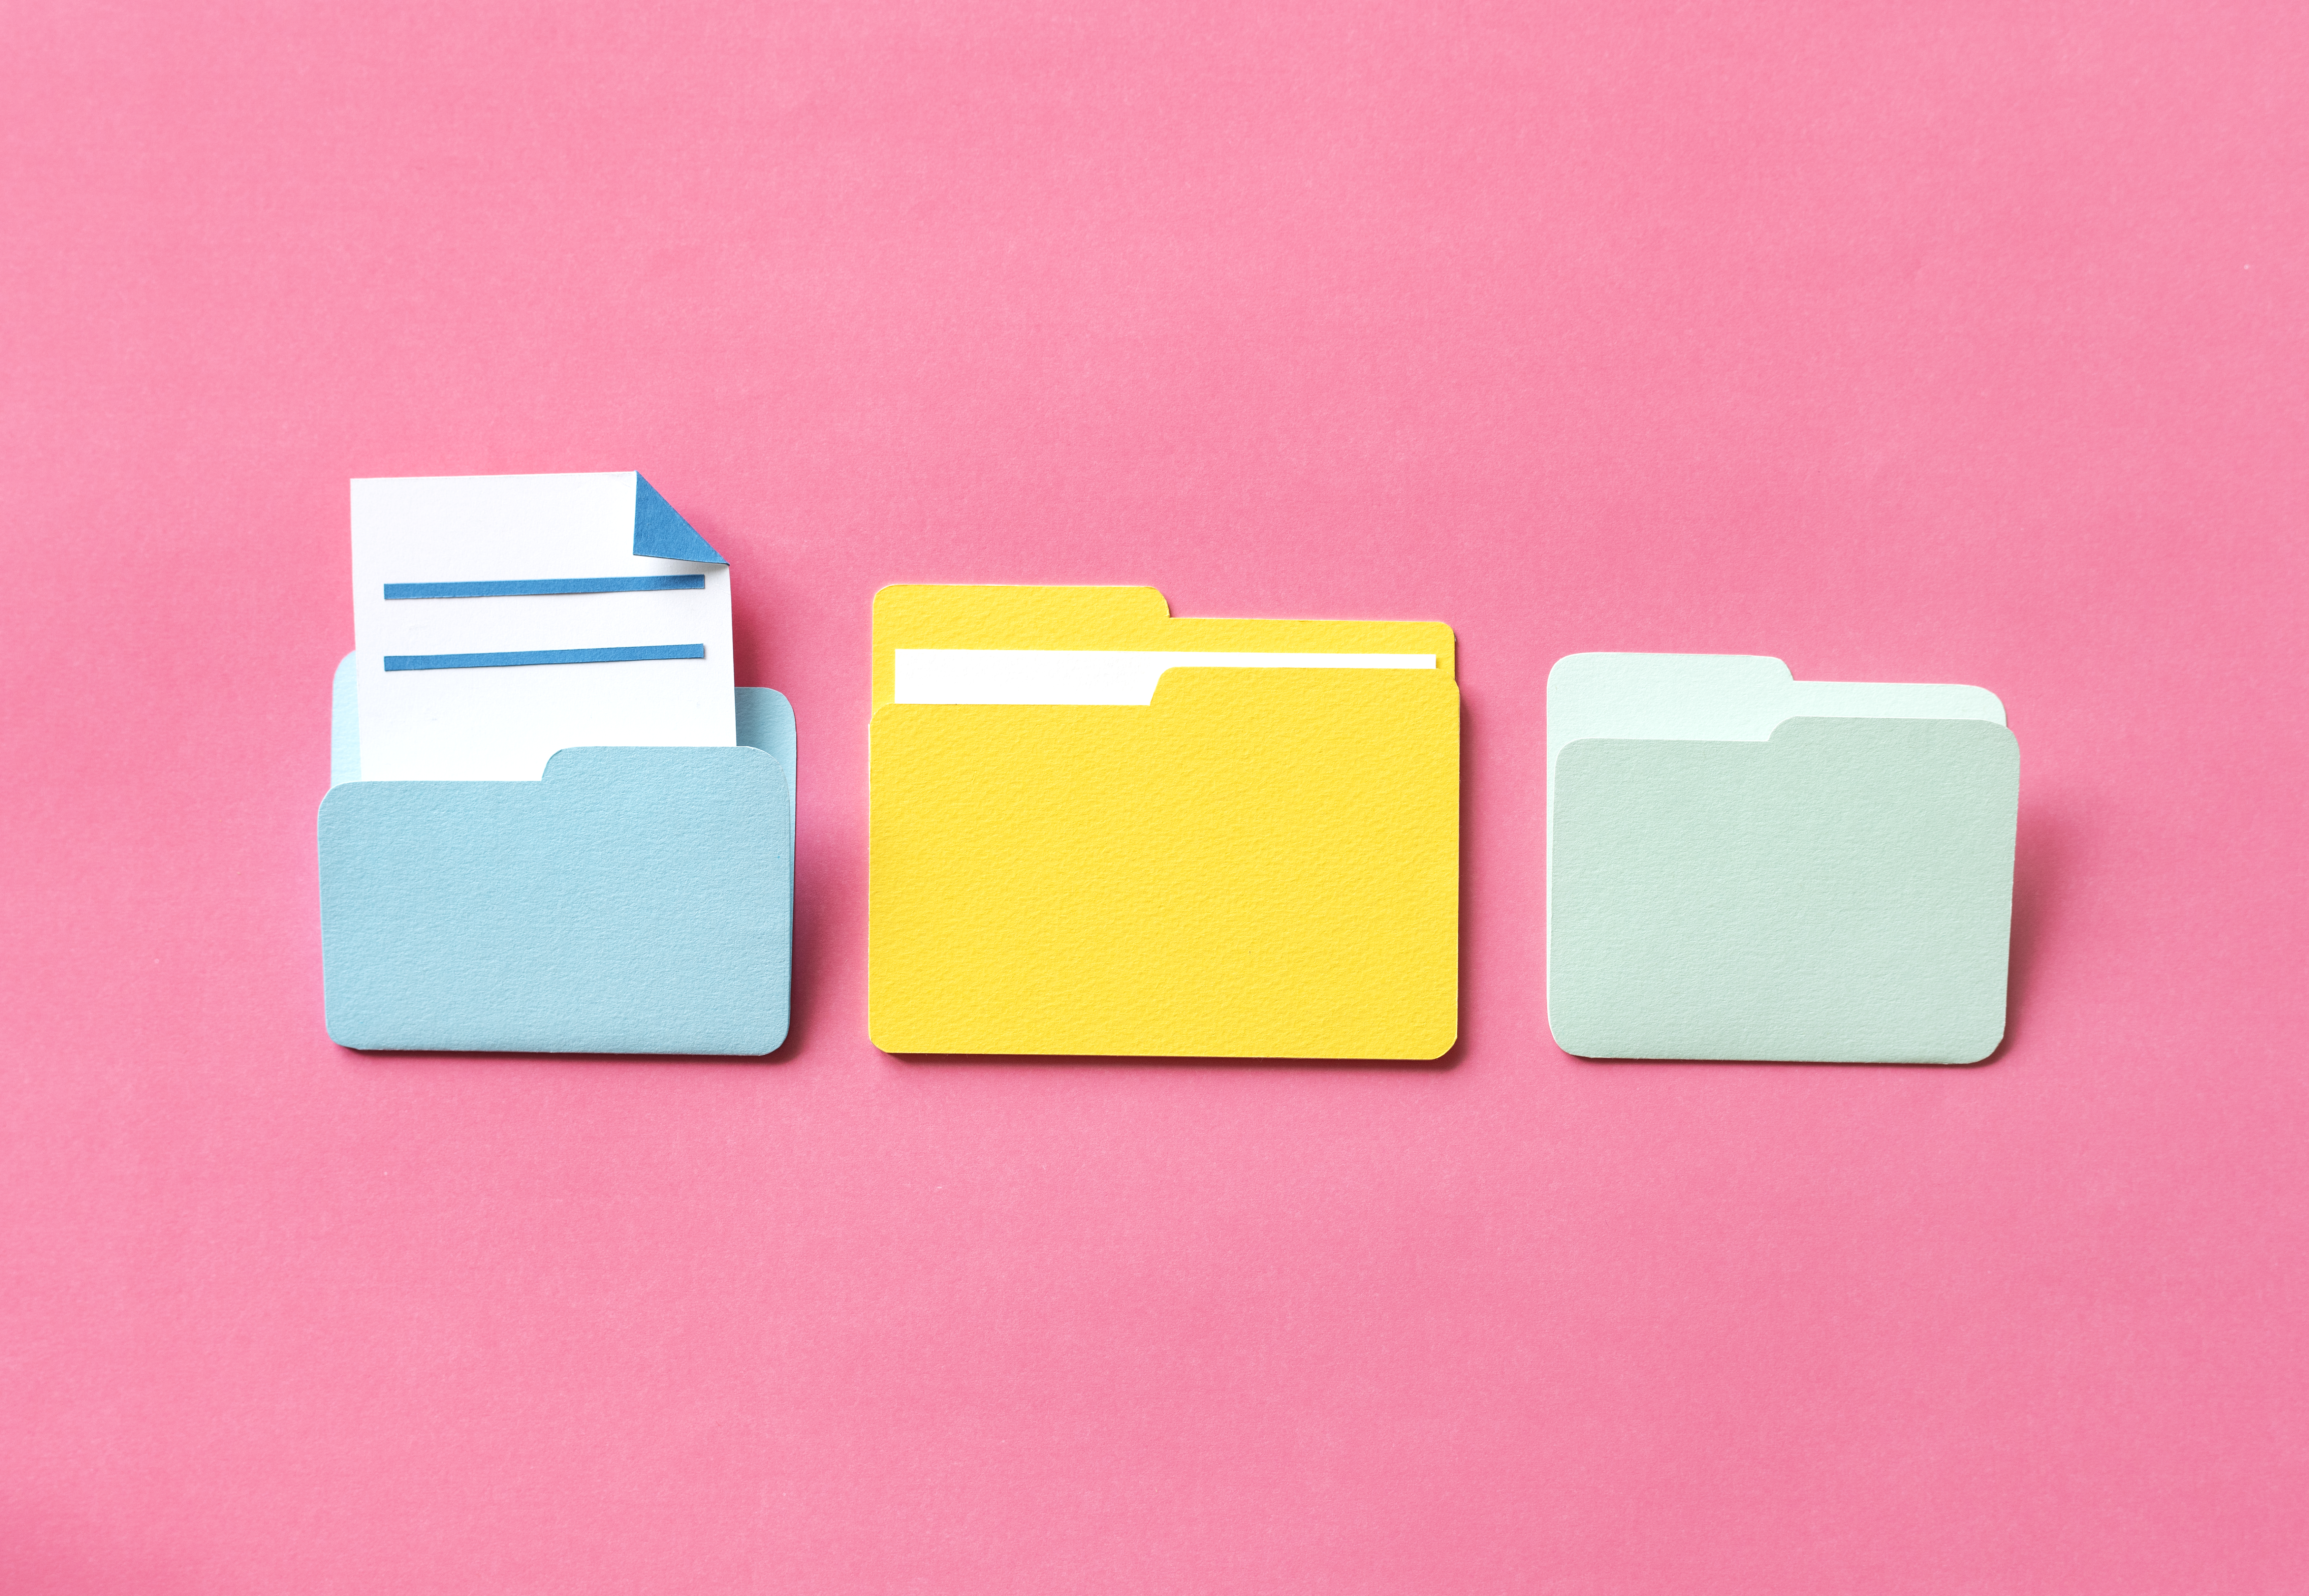 What type of email super-filer are you?